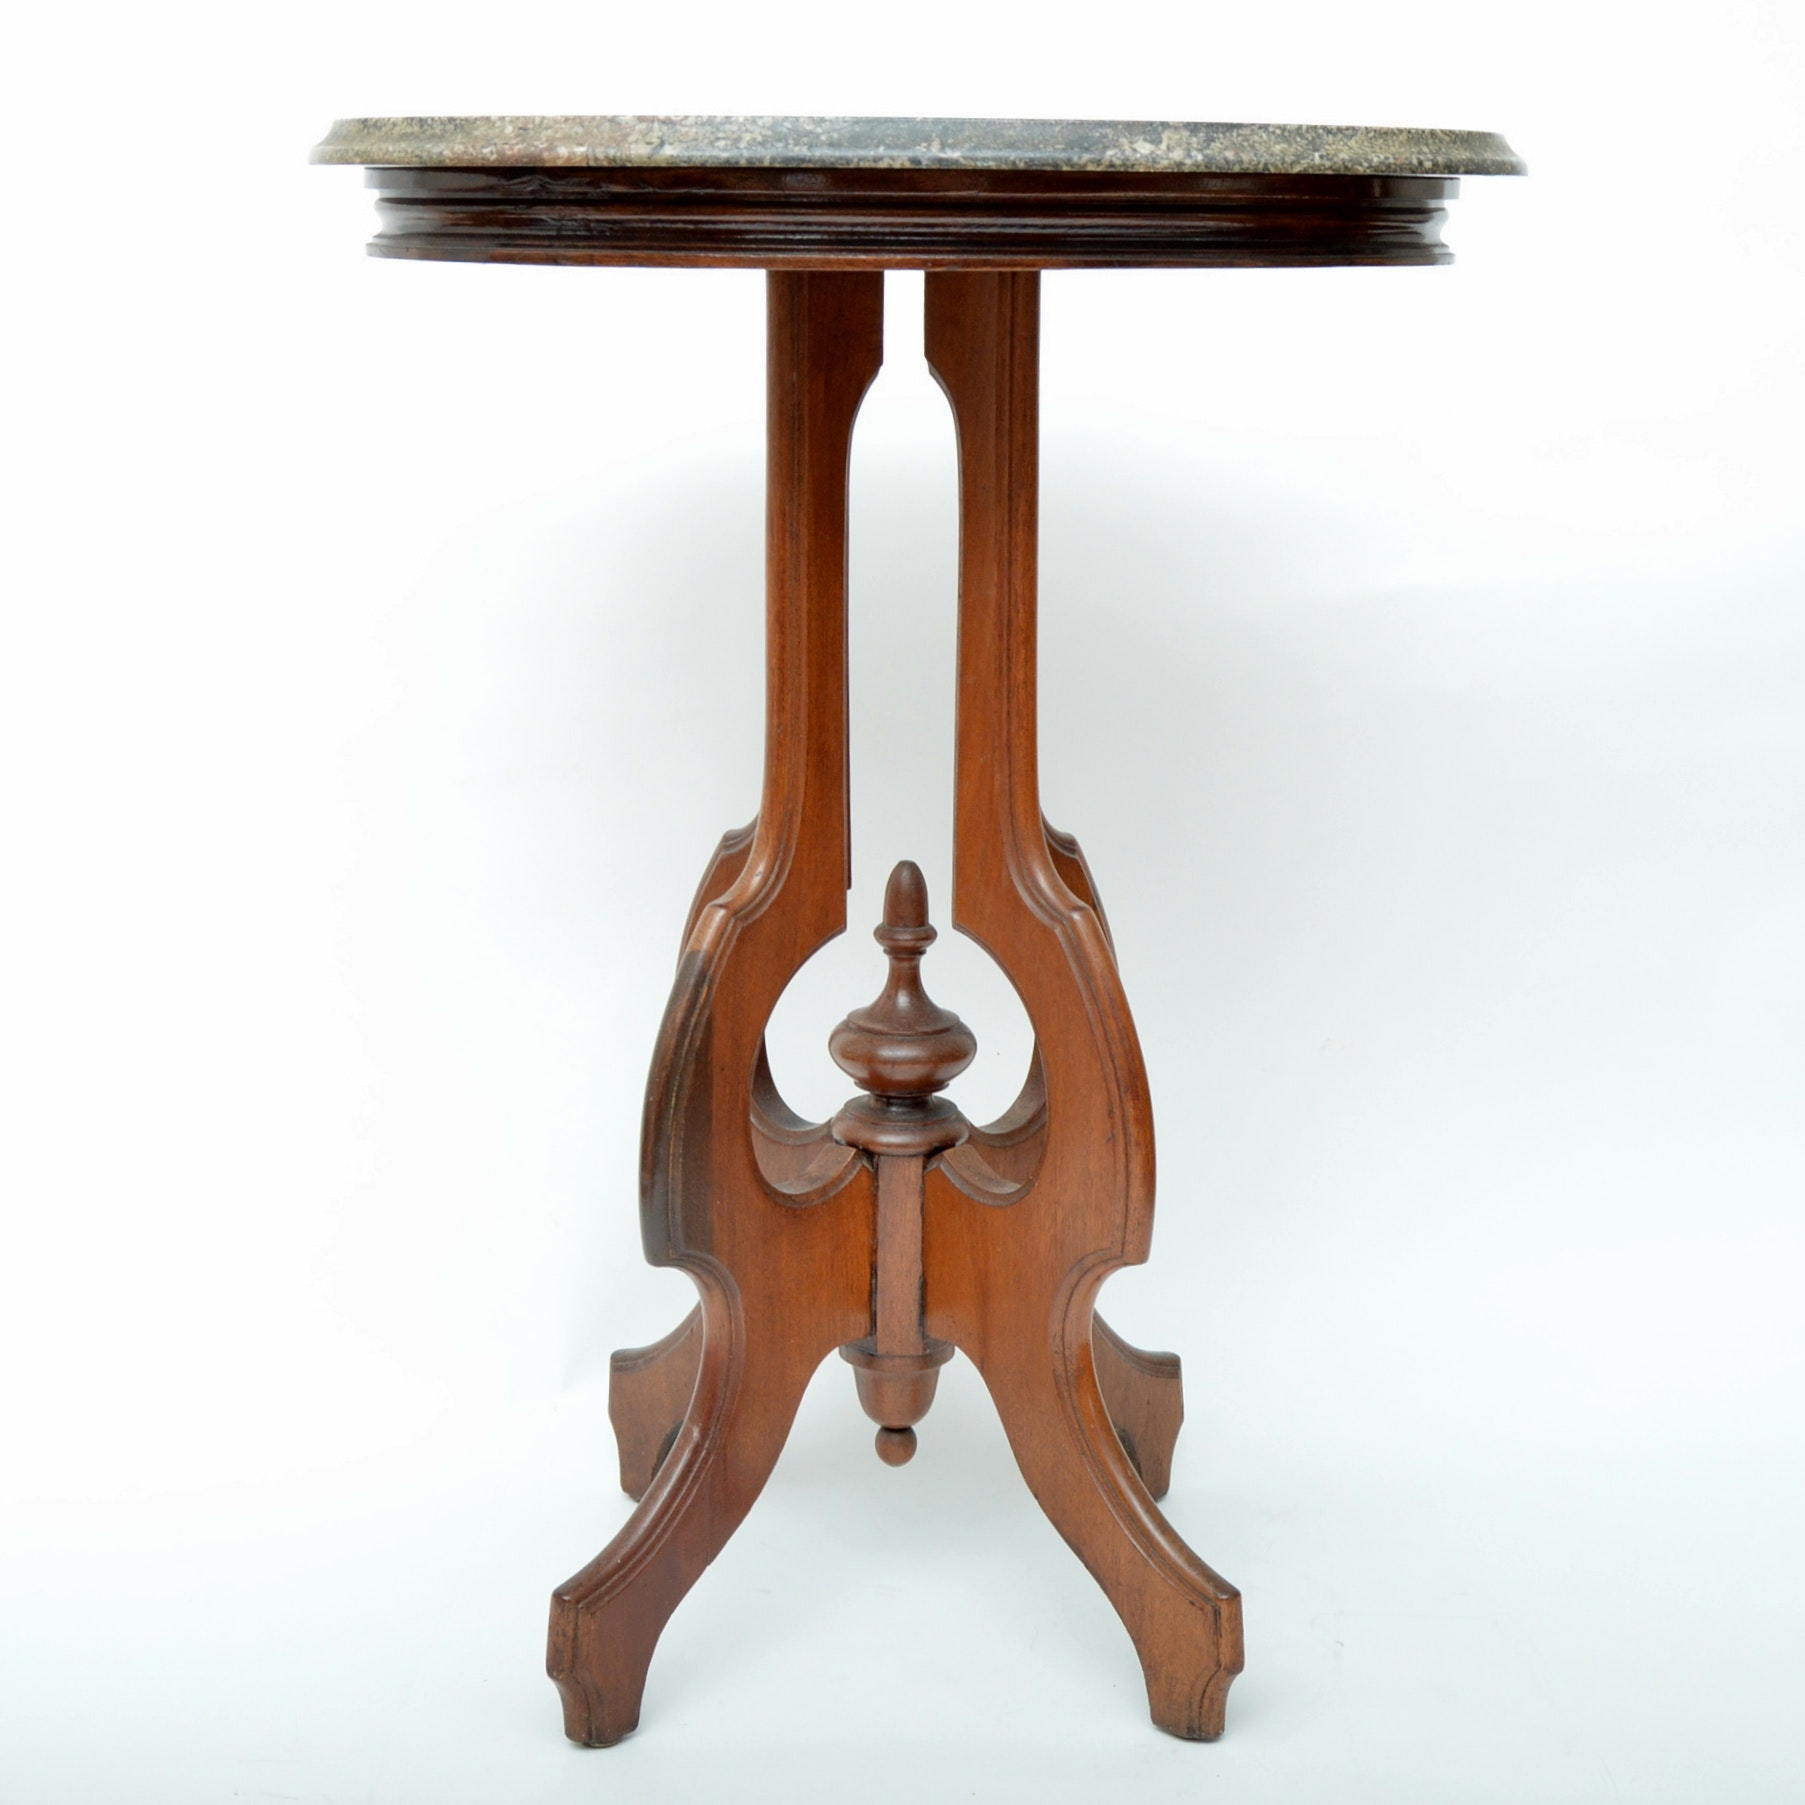 Victorian Romanesque Revival Marble Top Side Table